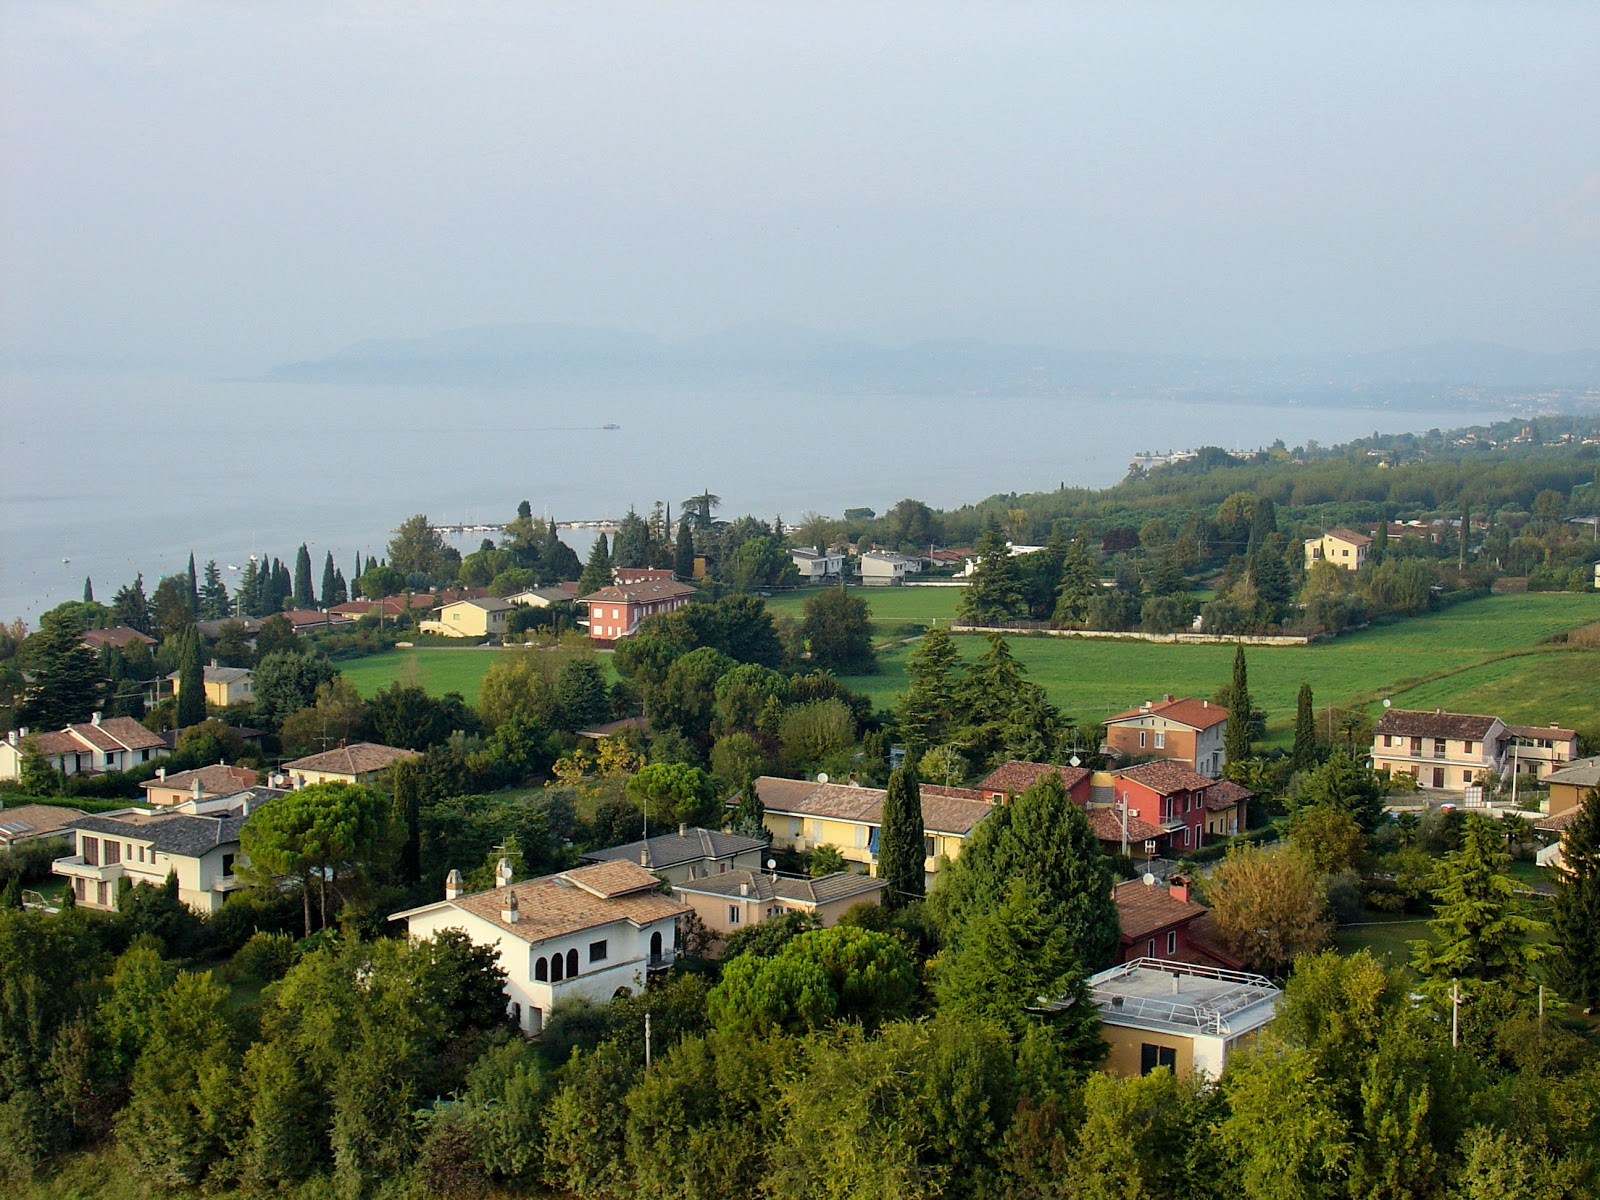 Bird's-eye views of Lake Garda and surrounding neighborhoods can be seen high atop the Flying Island.